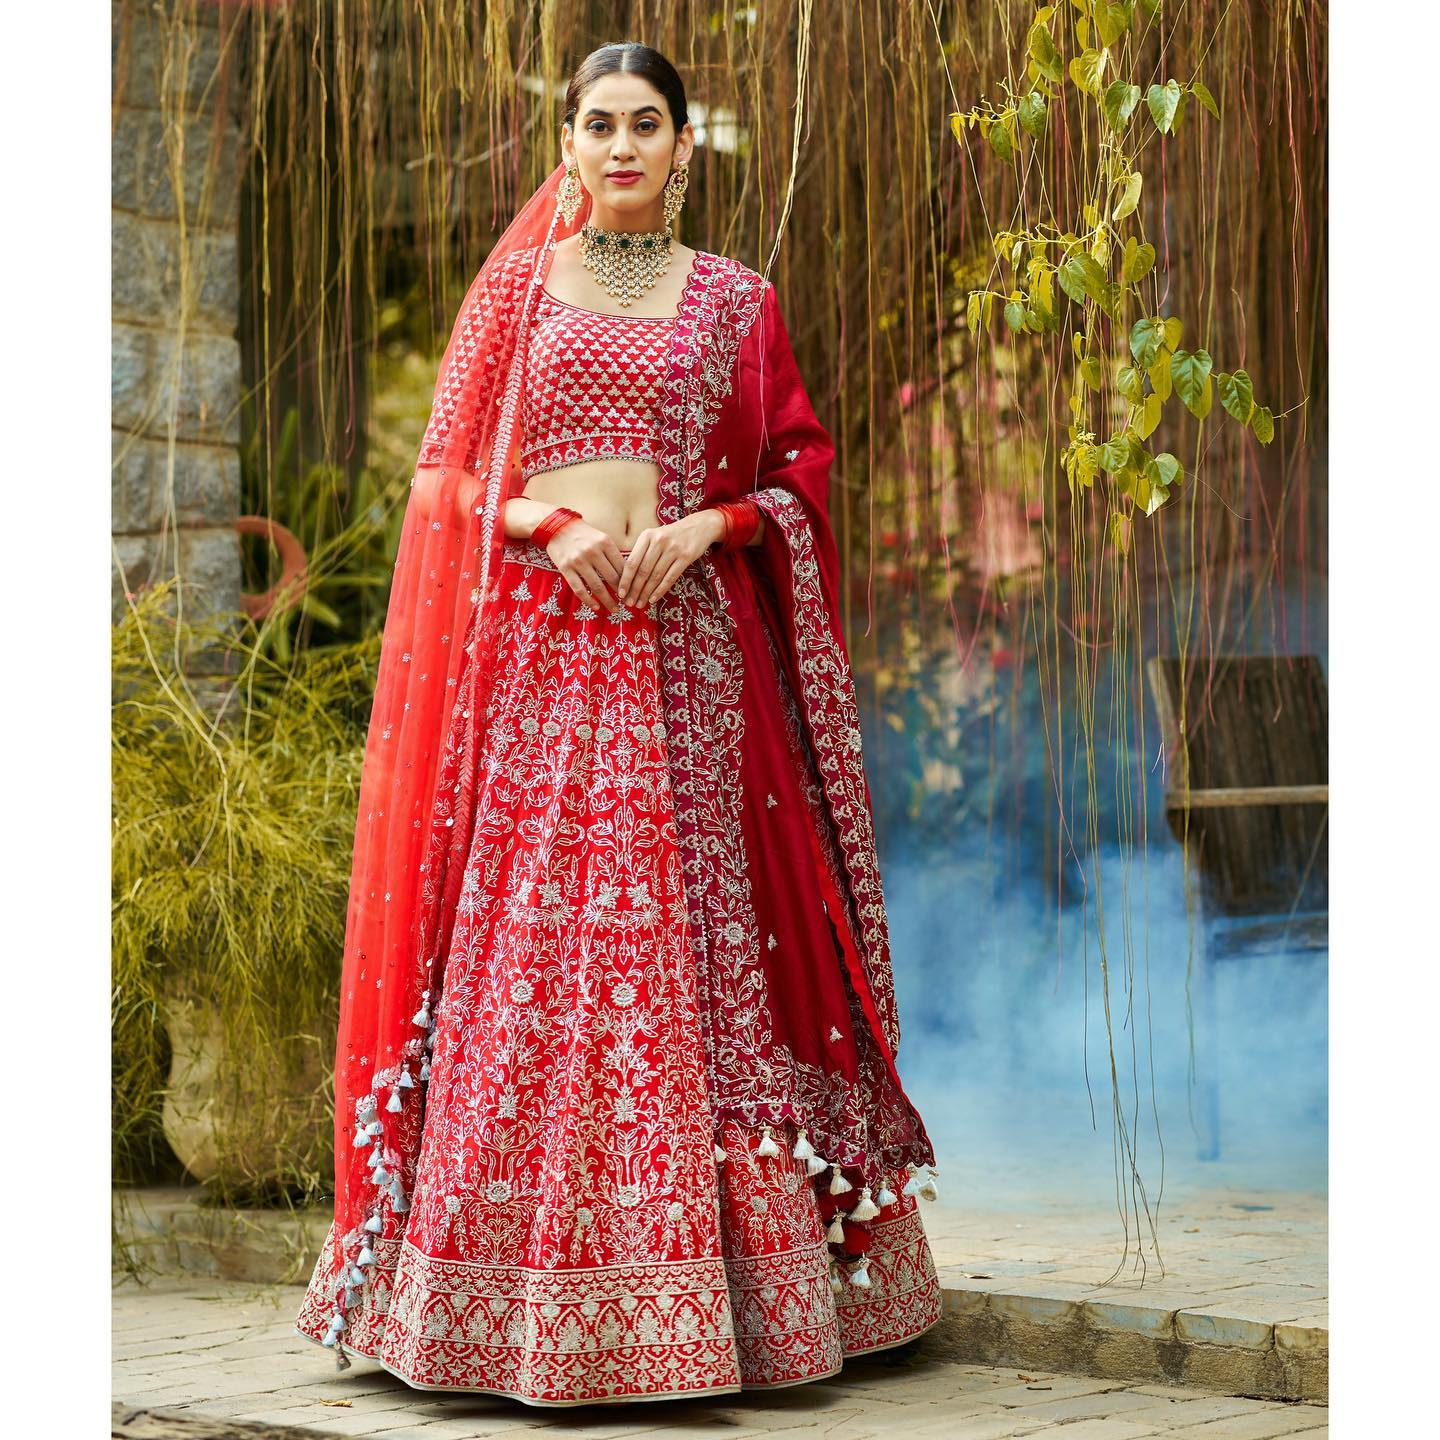 Gorgeous red bridal lehenga and blouse with net melimusugu. Lehenga and blouse with hand embroidery work. 2021-07-17